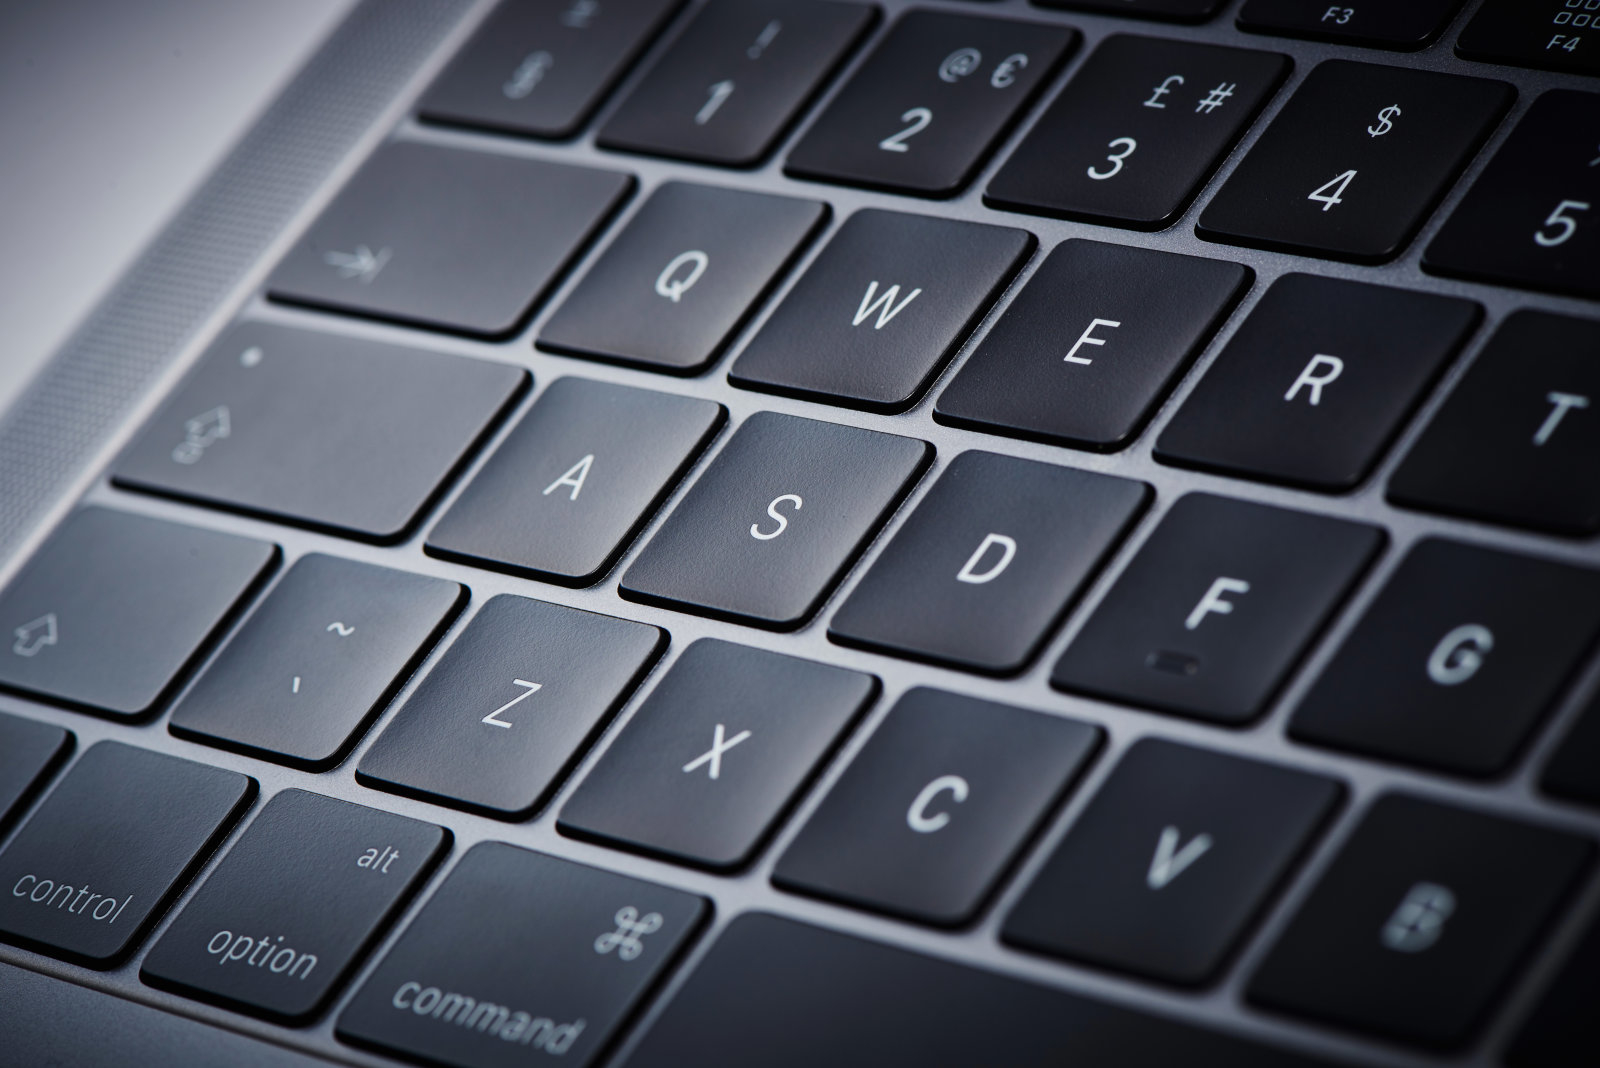 Detail of the keyboard on an Apple MacBook Pro 13-inch 2GHz laptop computer, taken on November 10, 2016. (Photo by Joby Sessions/MacLife Magazine via Getty Images)